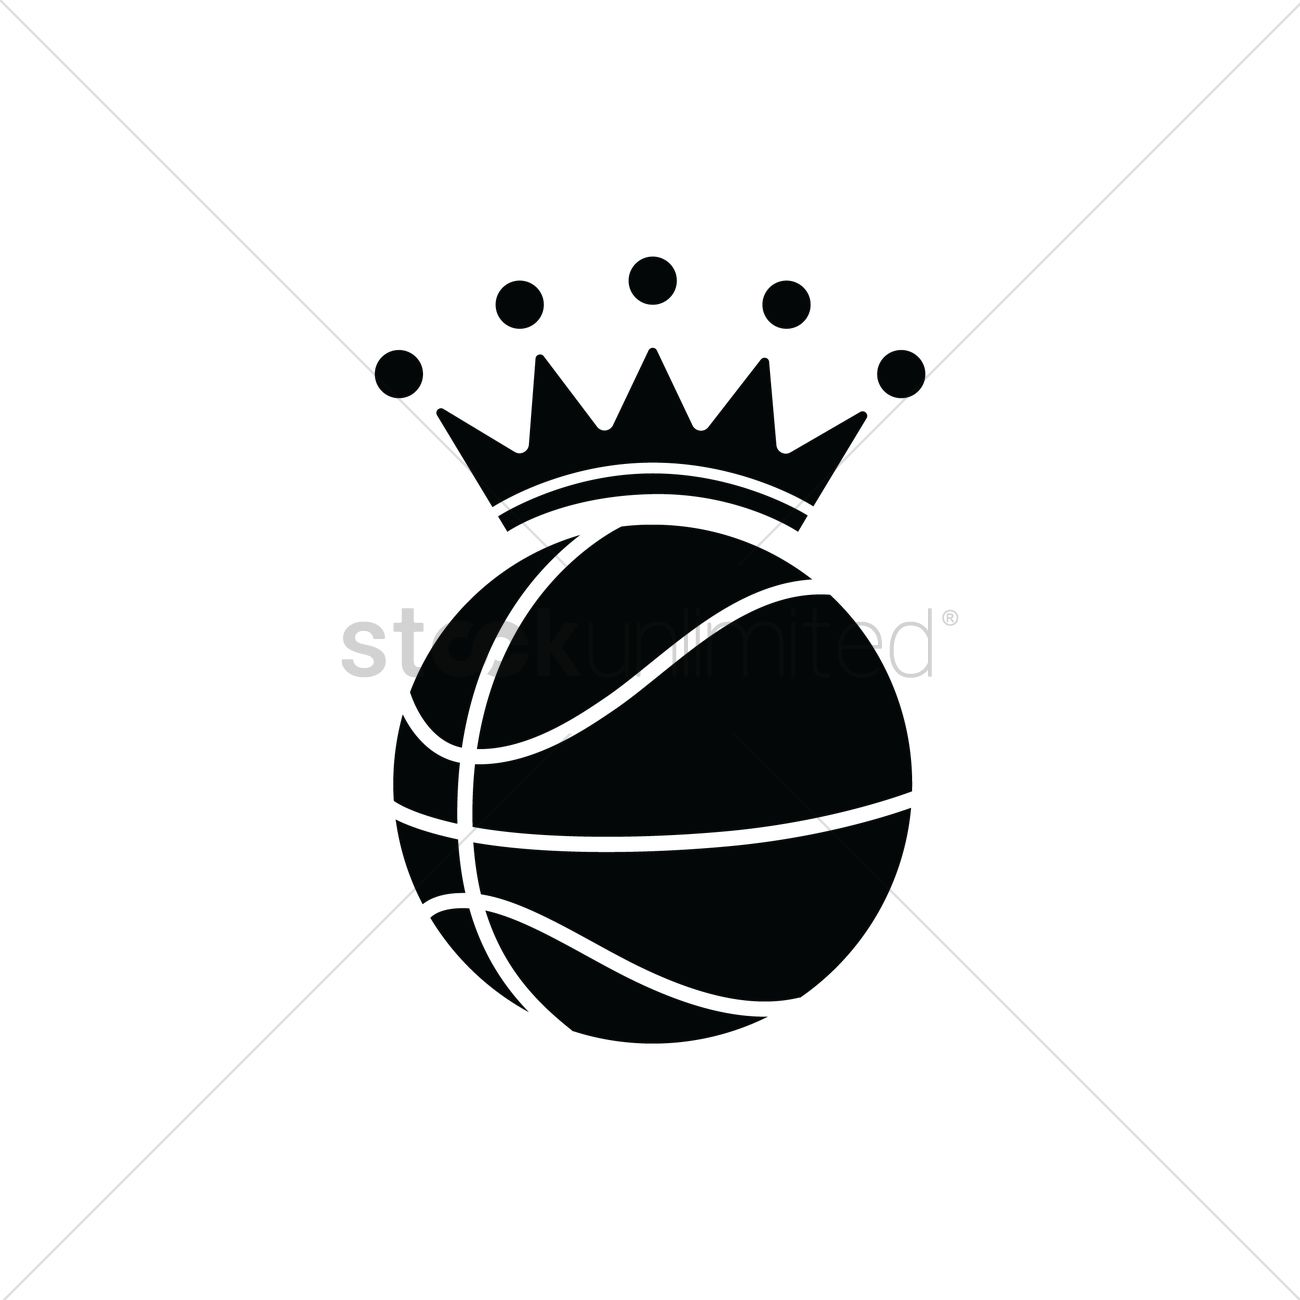 basketball with a crown vector image 1979511 stockunlimited